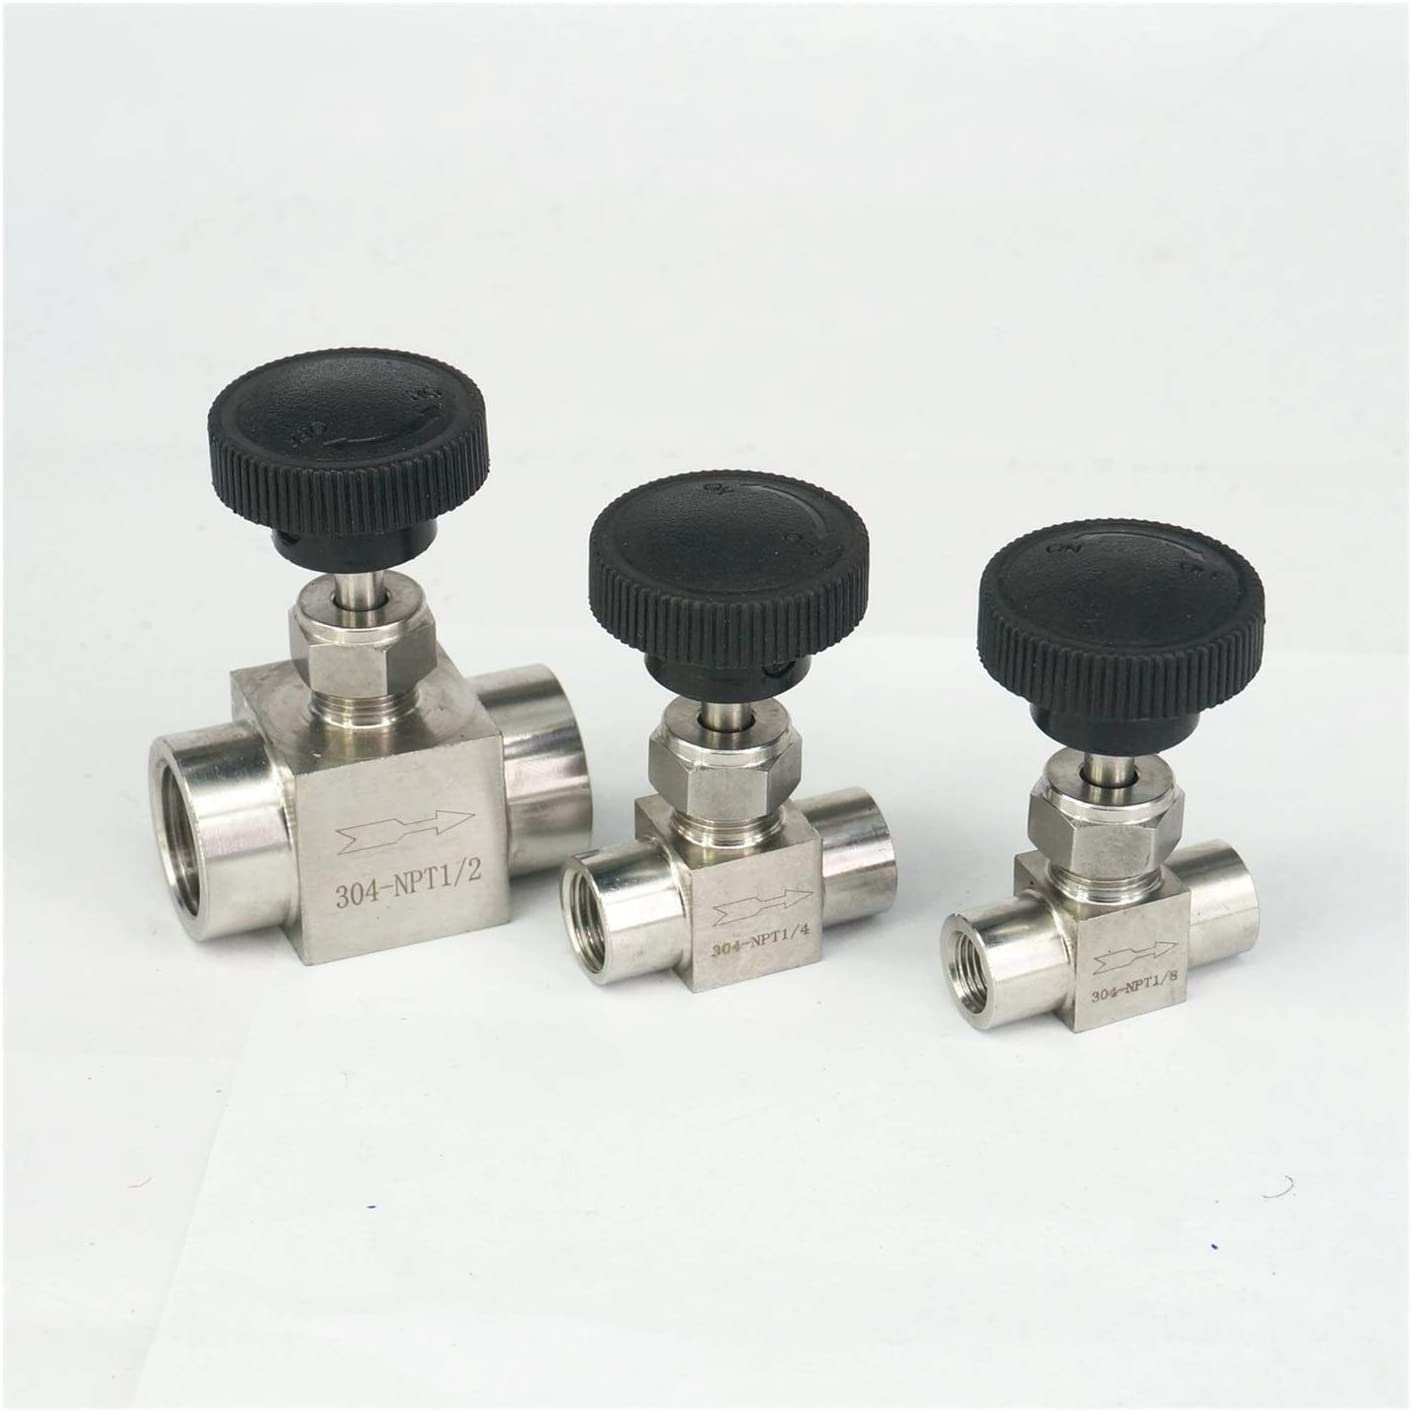 Fittings 1//8 1//4 1//2 Inch NPT Female Needle Valve 304 Stainless Steel Flow Control Water Gas Oil NPT Valves Thread Specification : 1//8 BAIJIAXIUSHANG-TIES Valves